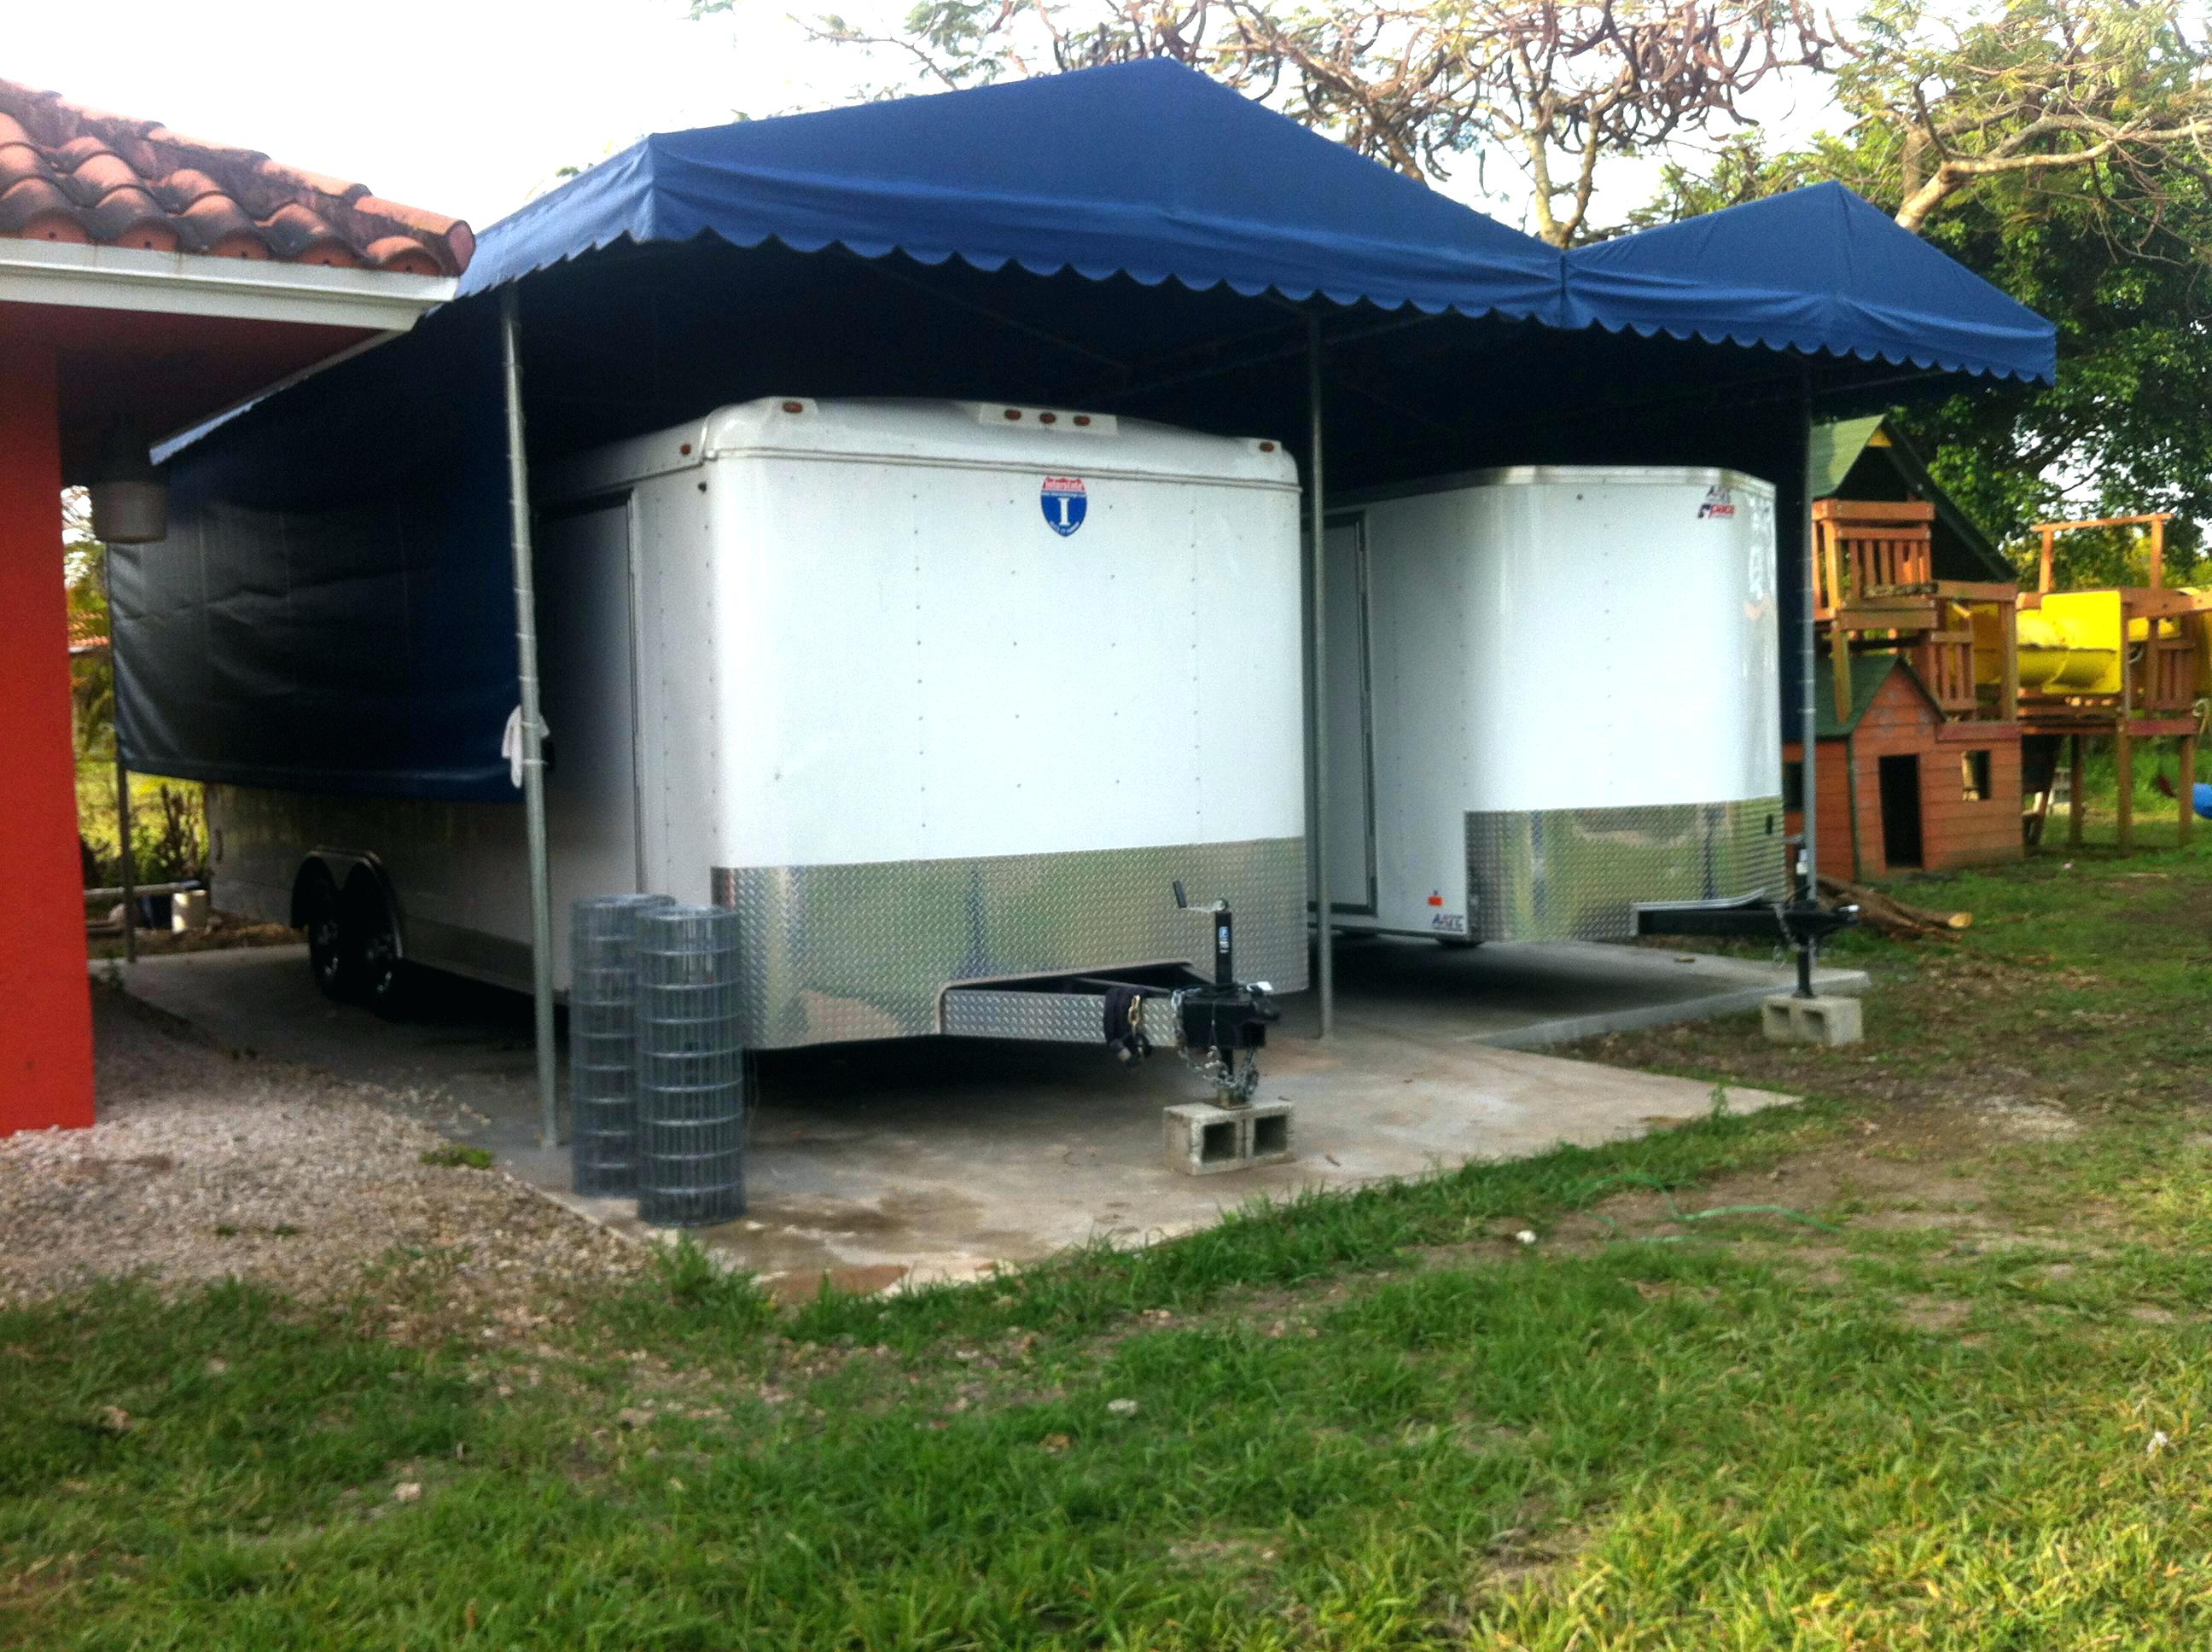 prepossessing pop up carport for pop up camper awnings for sale awning used only best fabric full of pop up carport